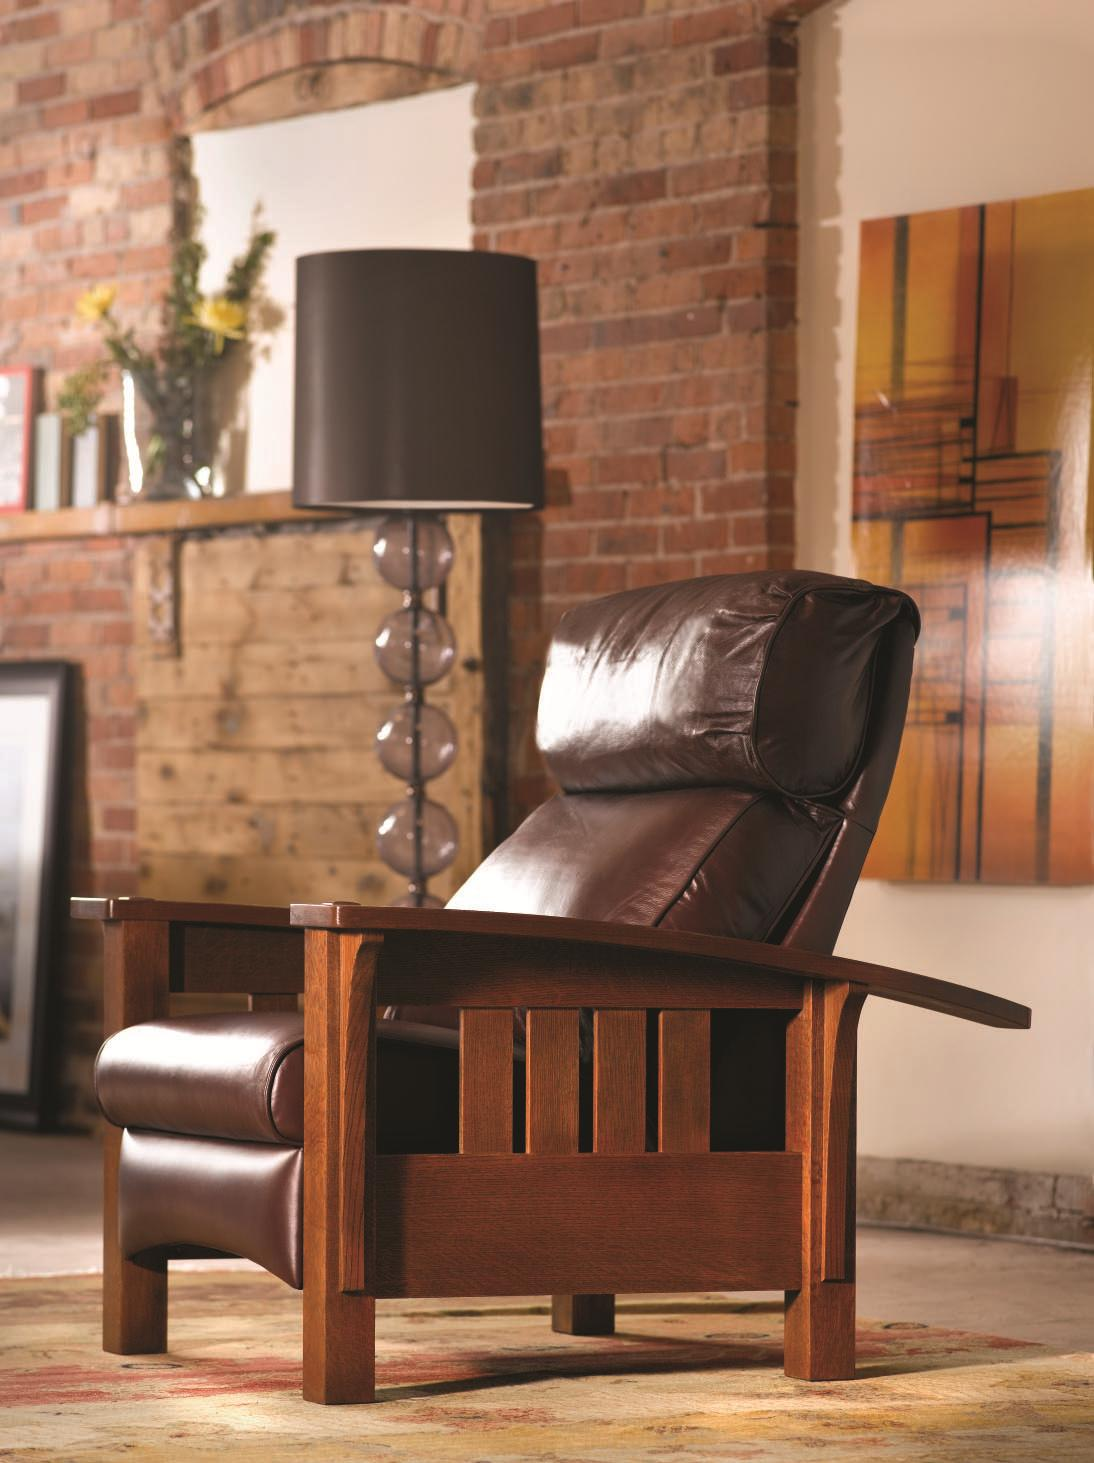 darkbrown leather single sofa by Sprintz Furniture on multicolor carpet plus floor standing lamp ideas